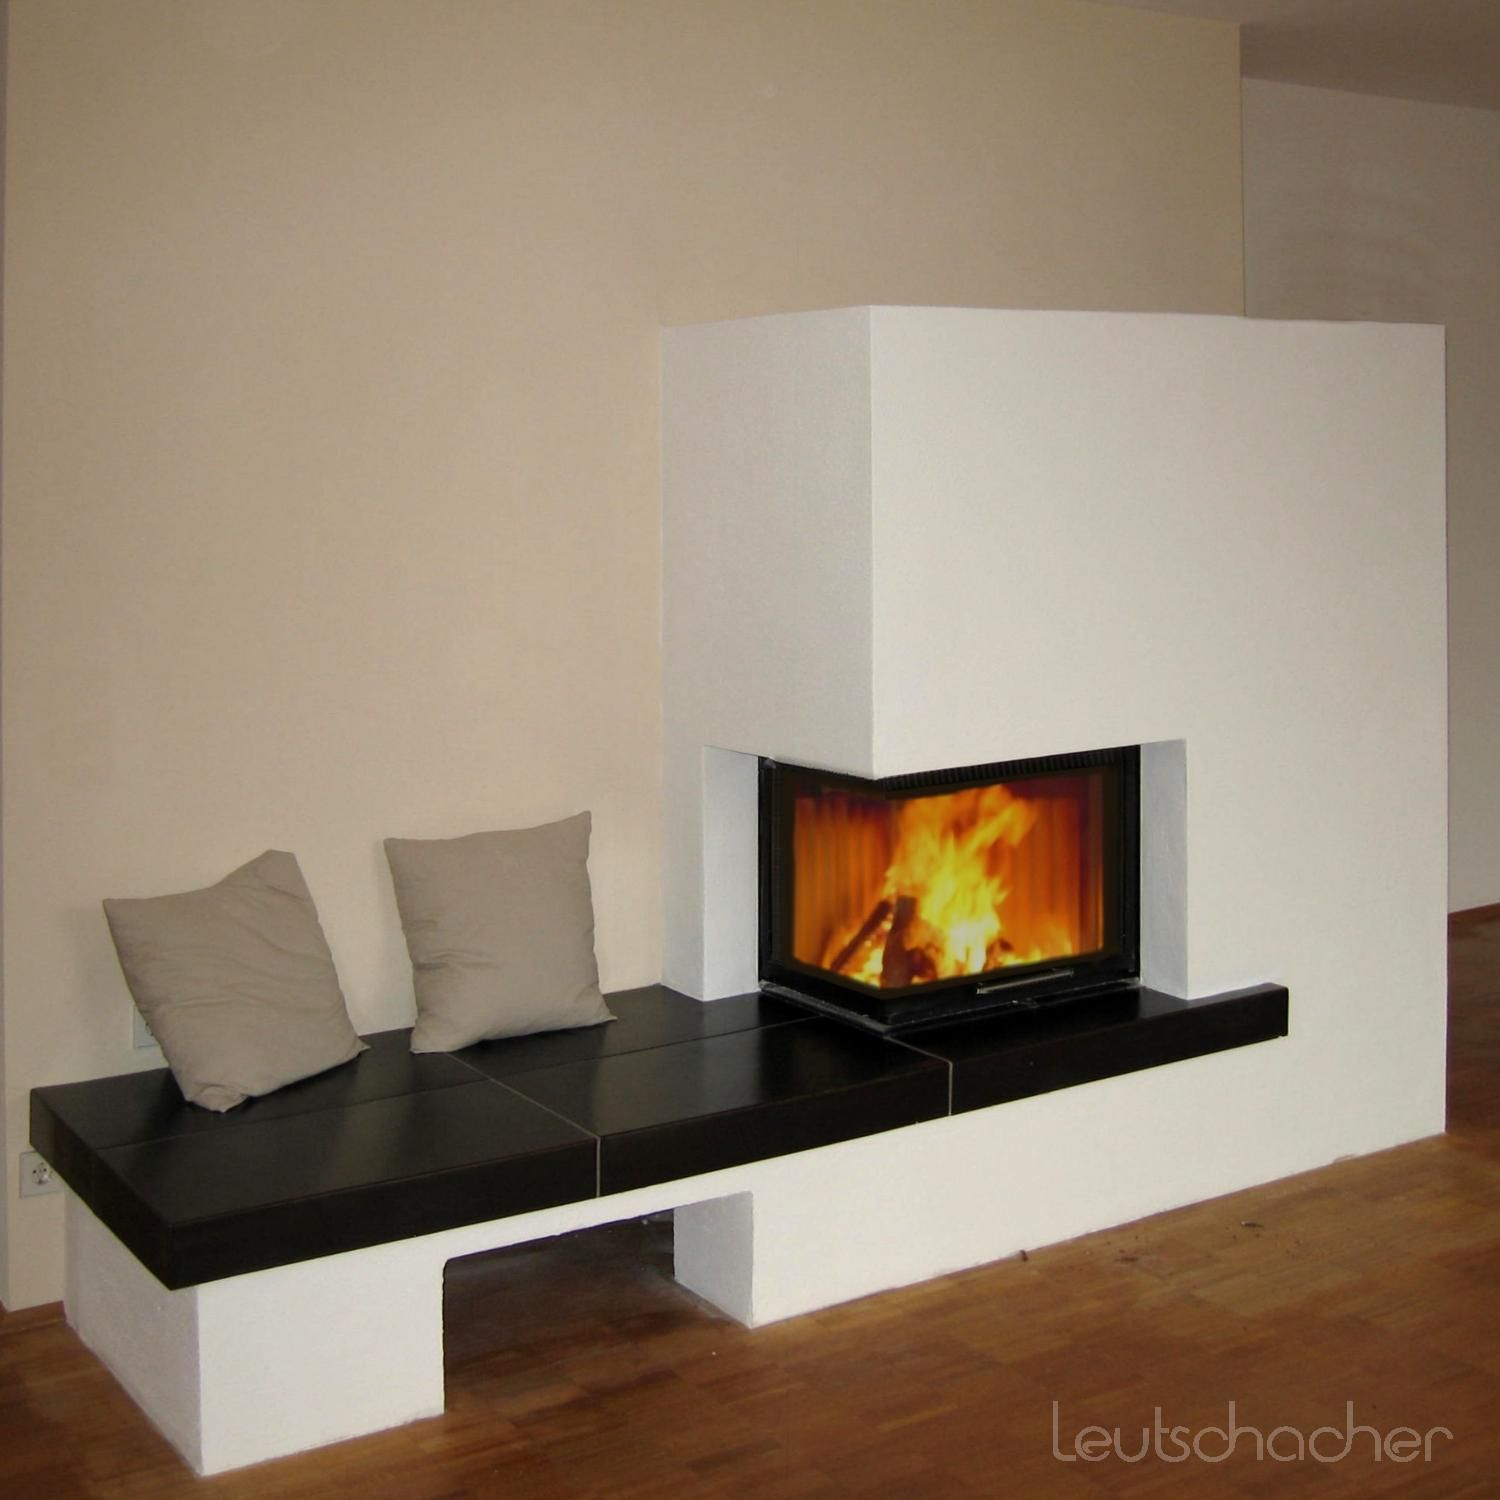 leutschacher kamin heizkamin warmluftkamin kamineinsatz project reethaus pinterest stove. Black Bedroom Furniture Sets. Home Design Ideas